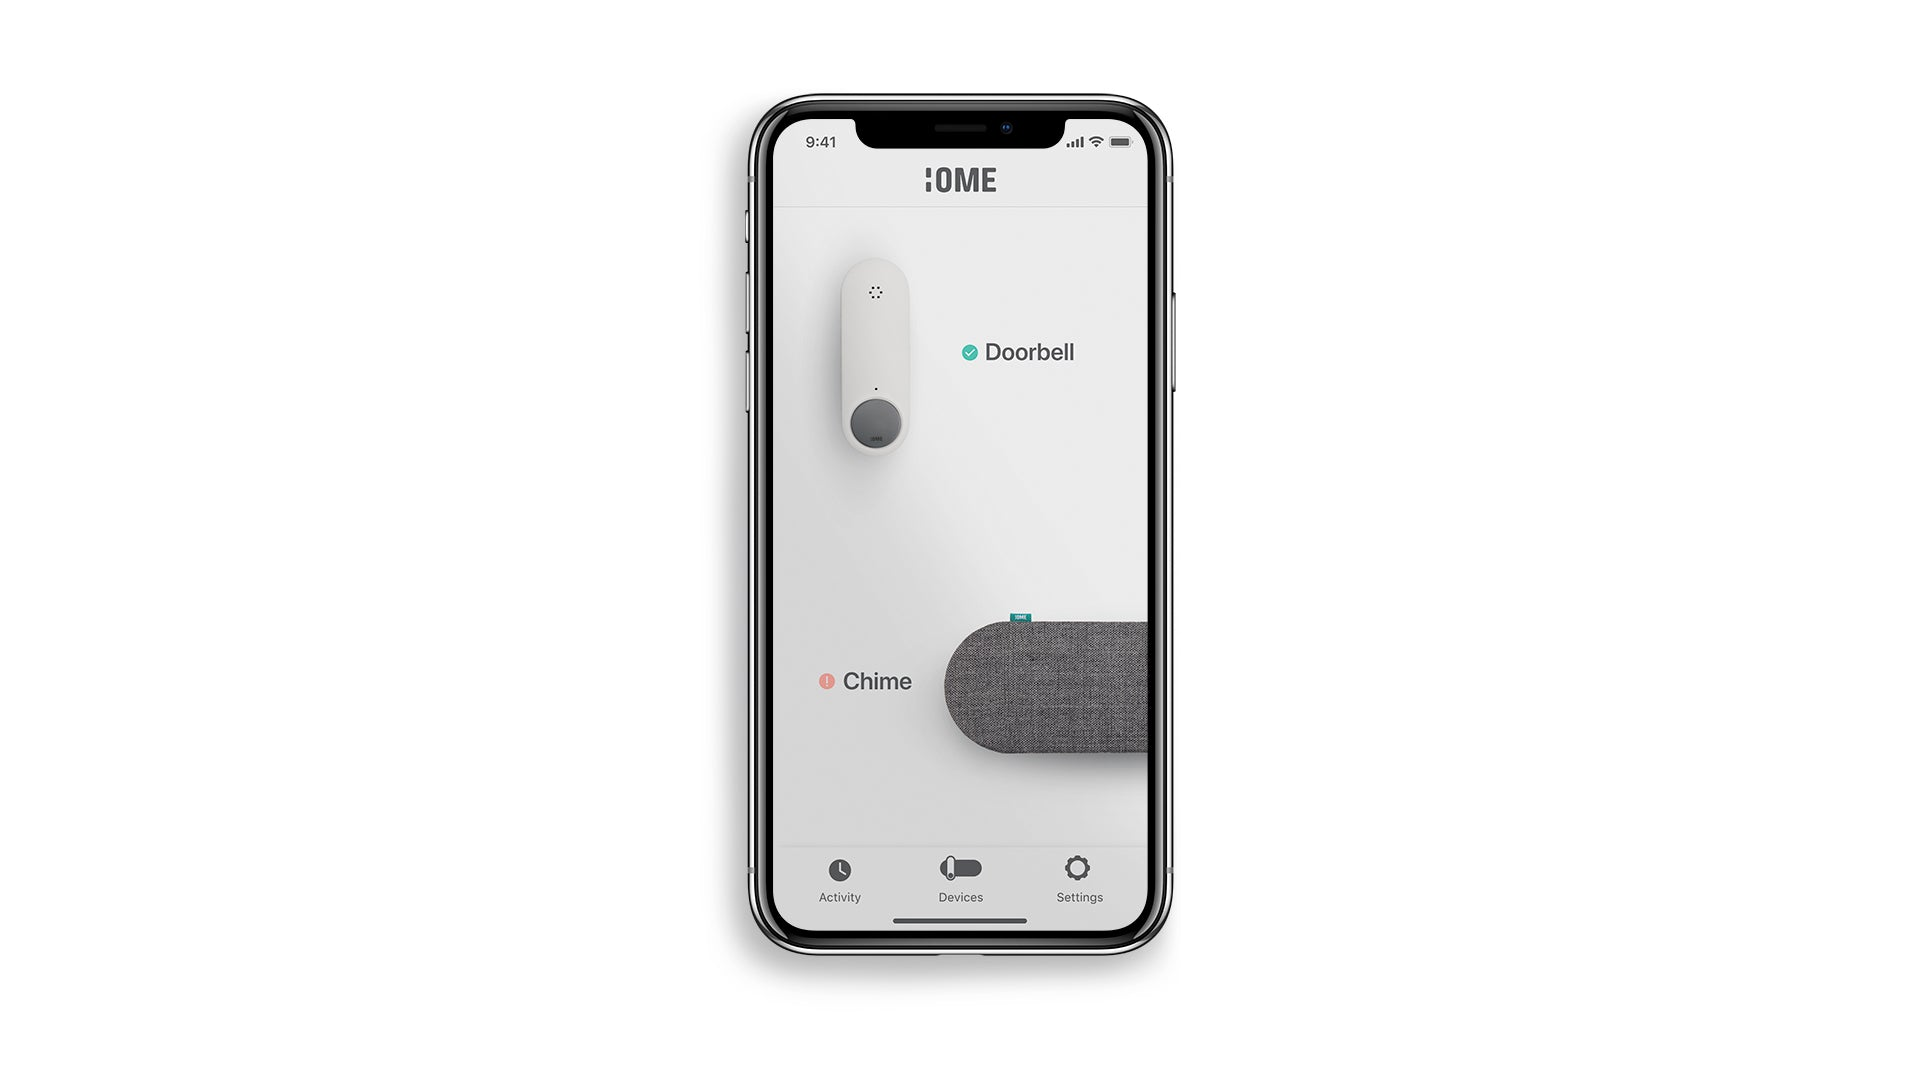 Ome Smart Doorbell App Home Screen